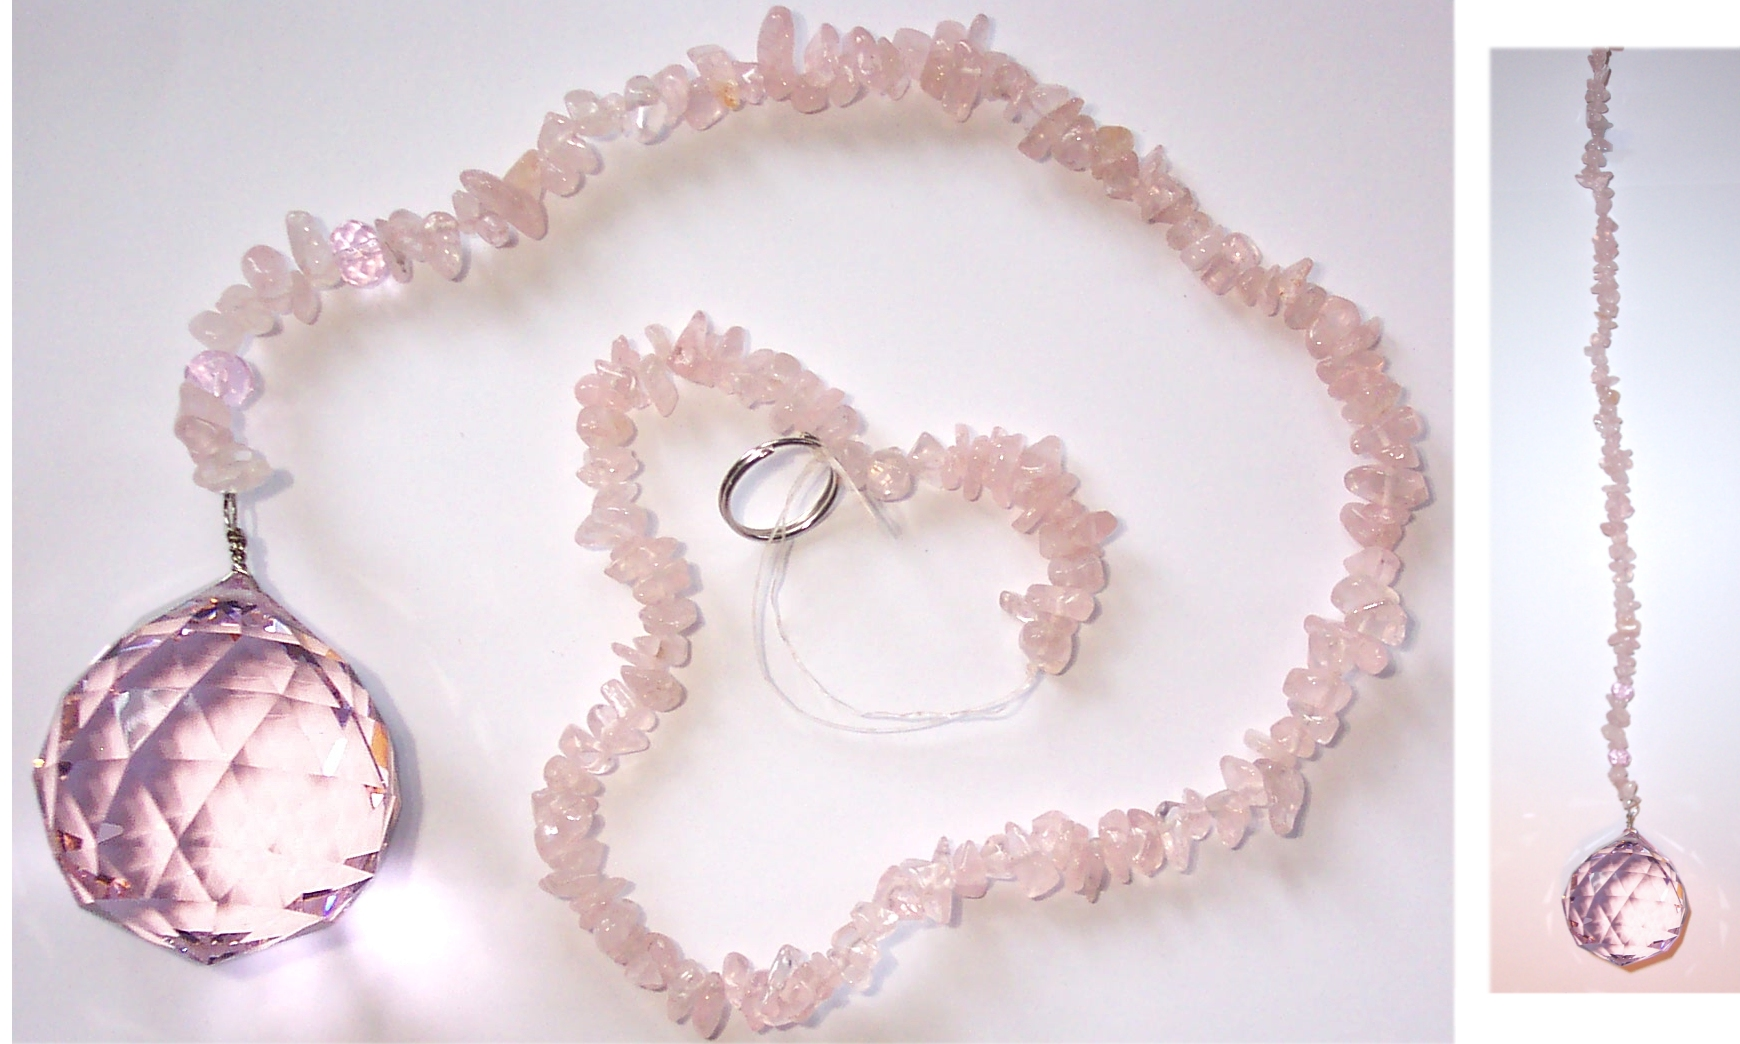 Pink Crystal Sphere (40mm) with Rose Quartz Tail